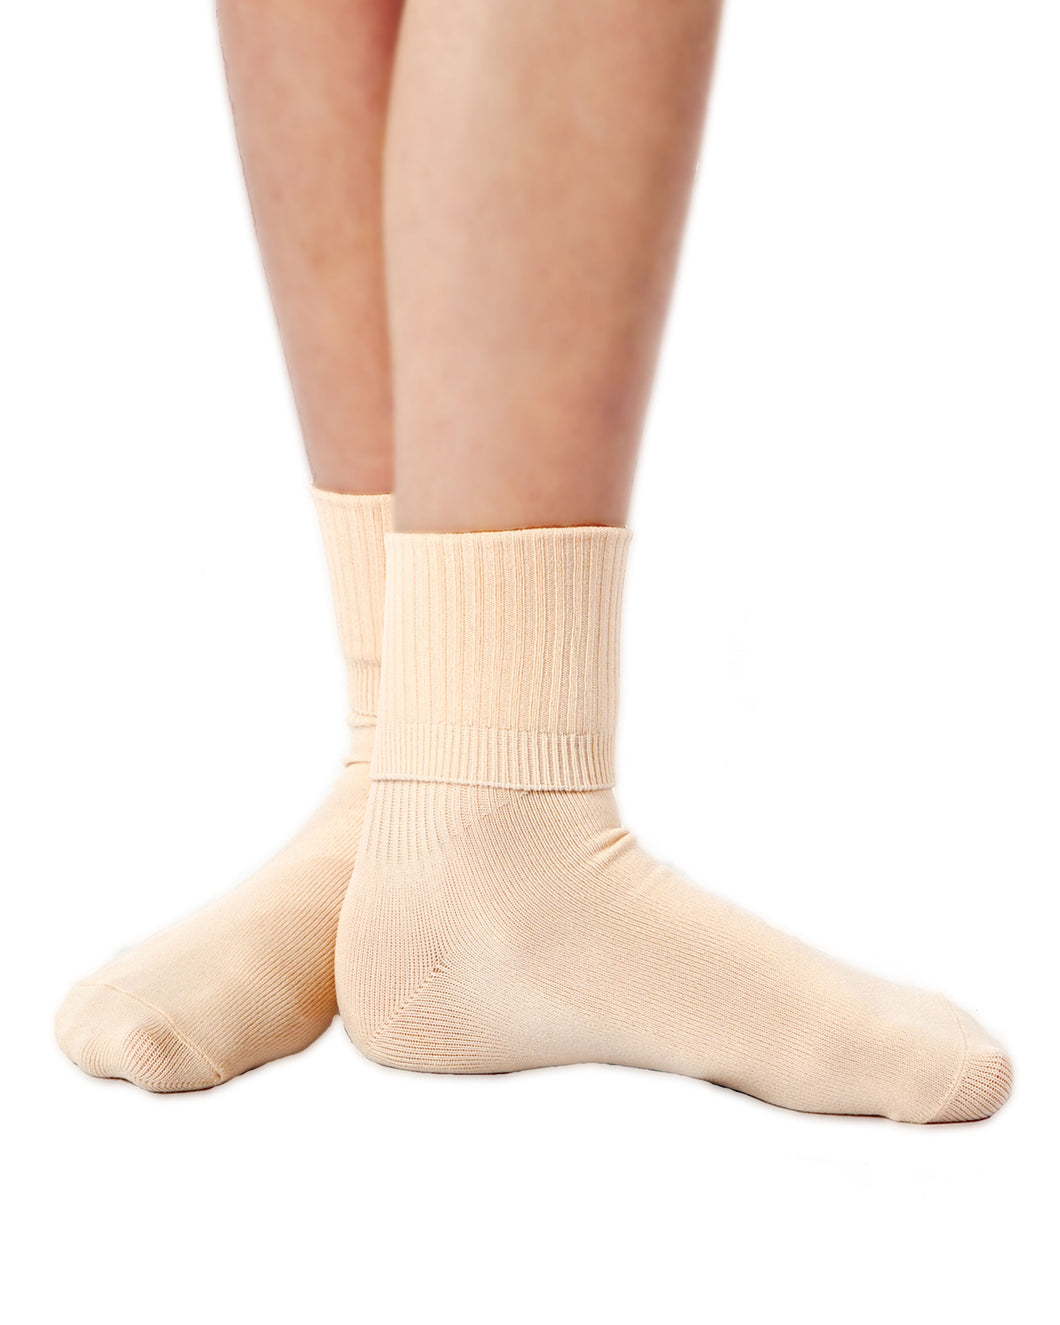 Ribbed flesh coloured ballet socks